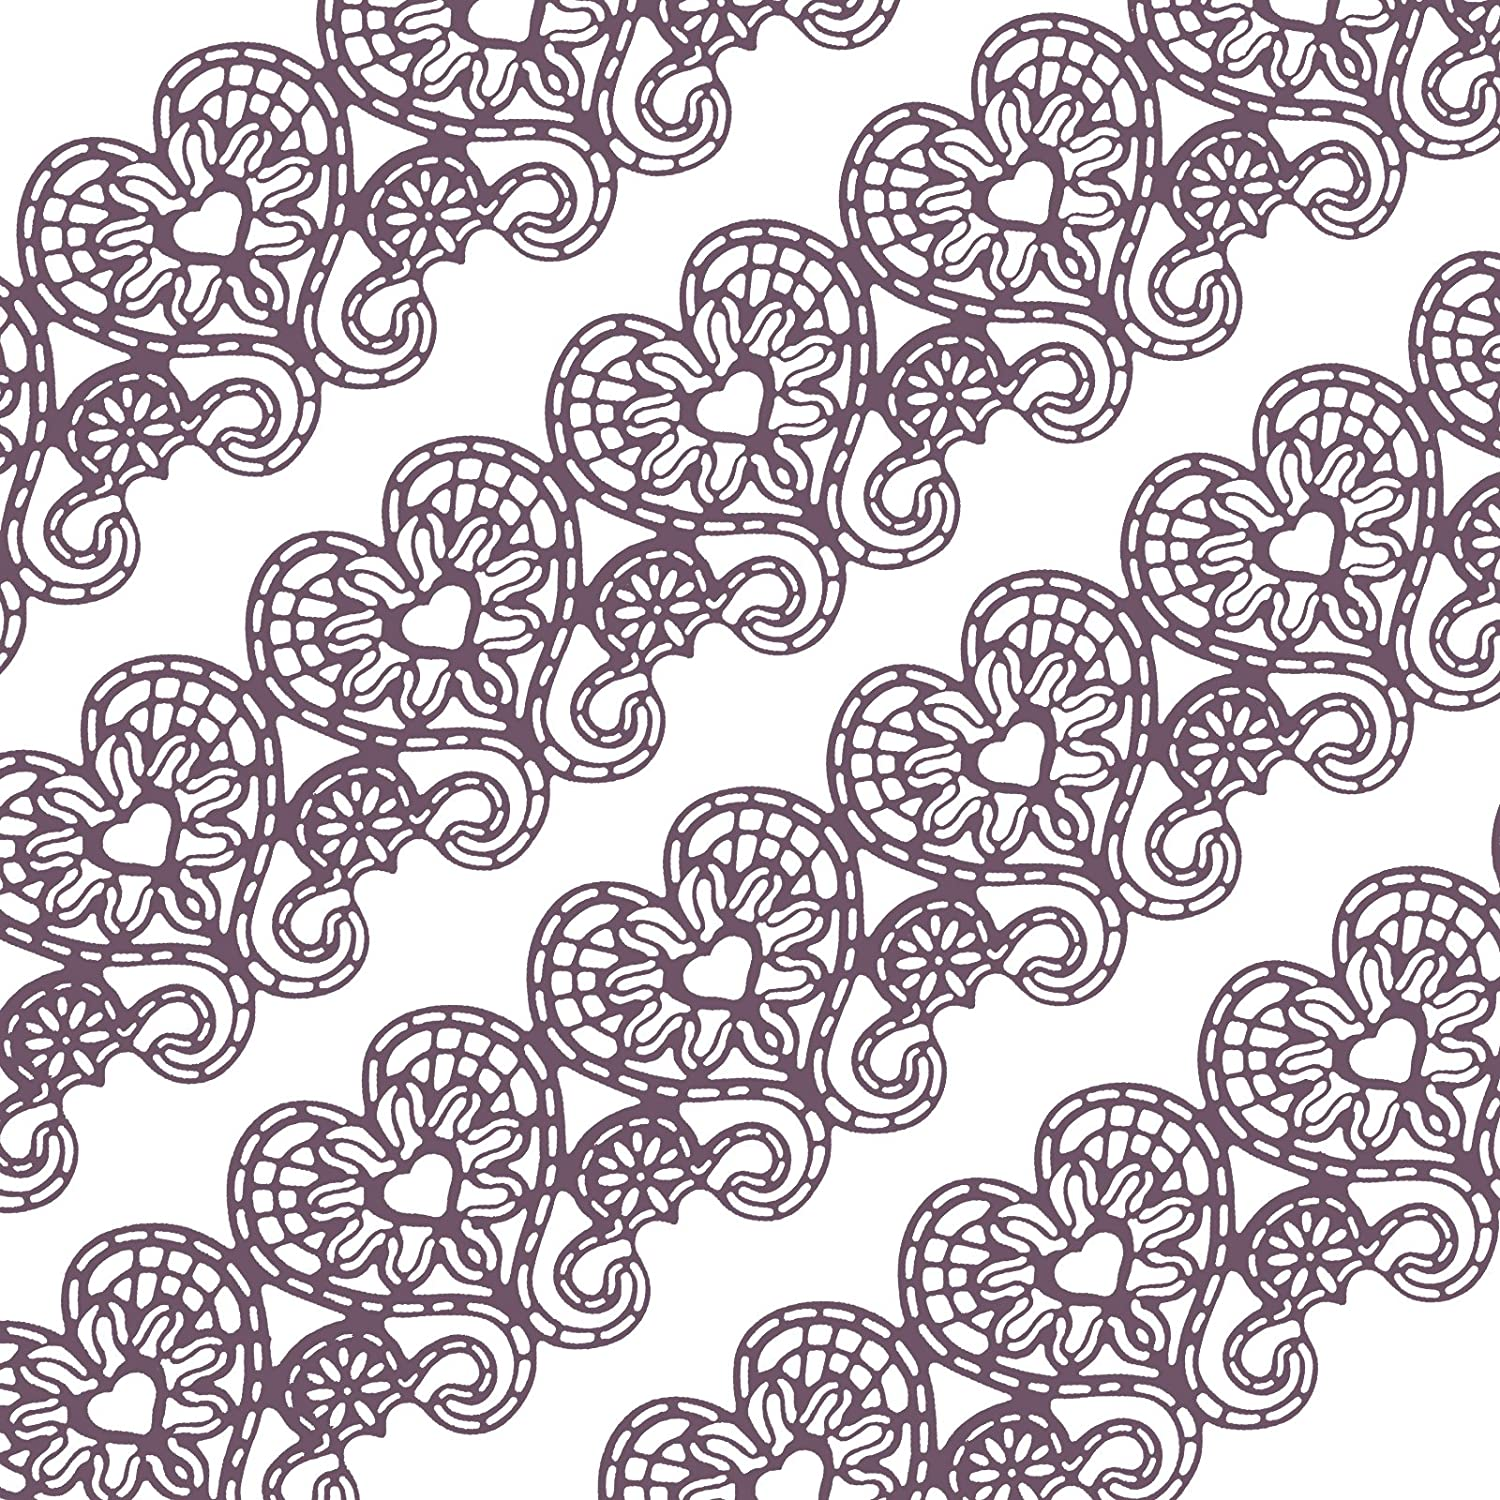 Funshowcase Large Pre-Made Ready to Use Edible Cake Lace Love Heart 14-inch 10-piece Set Purple